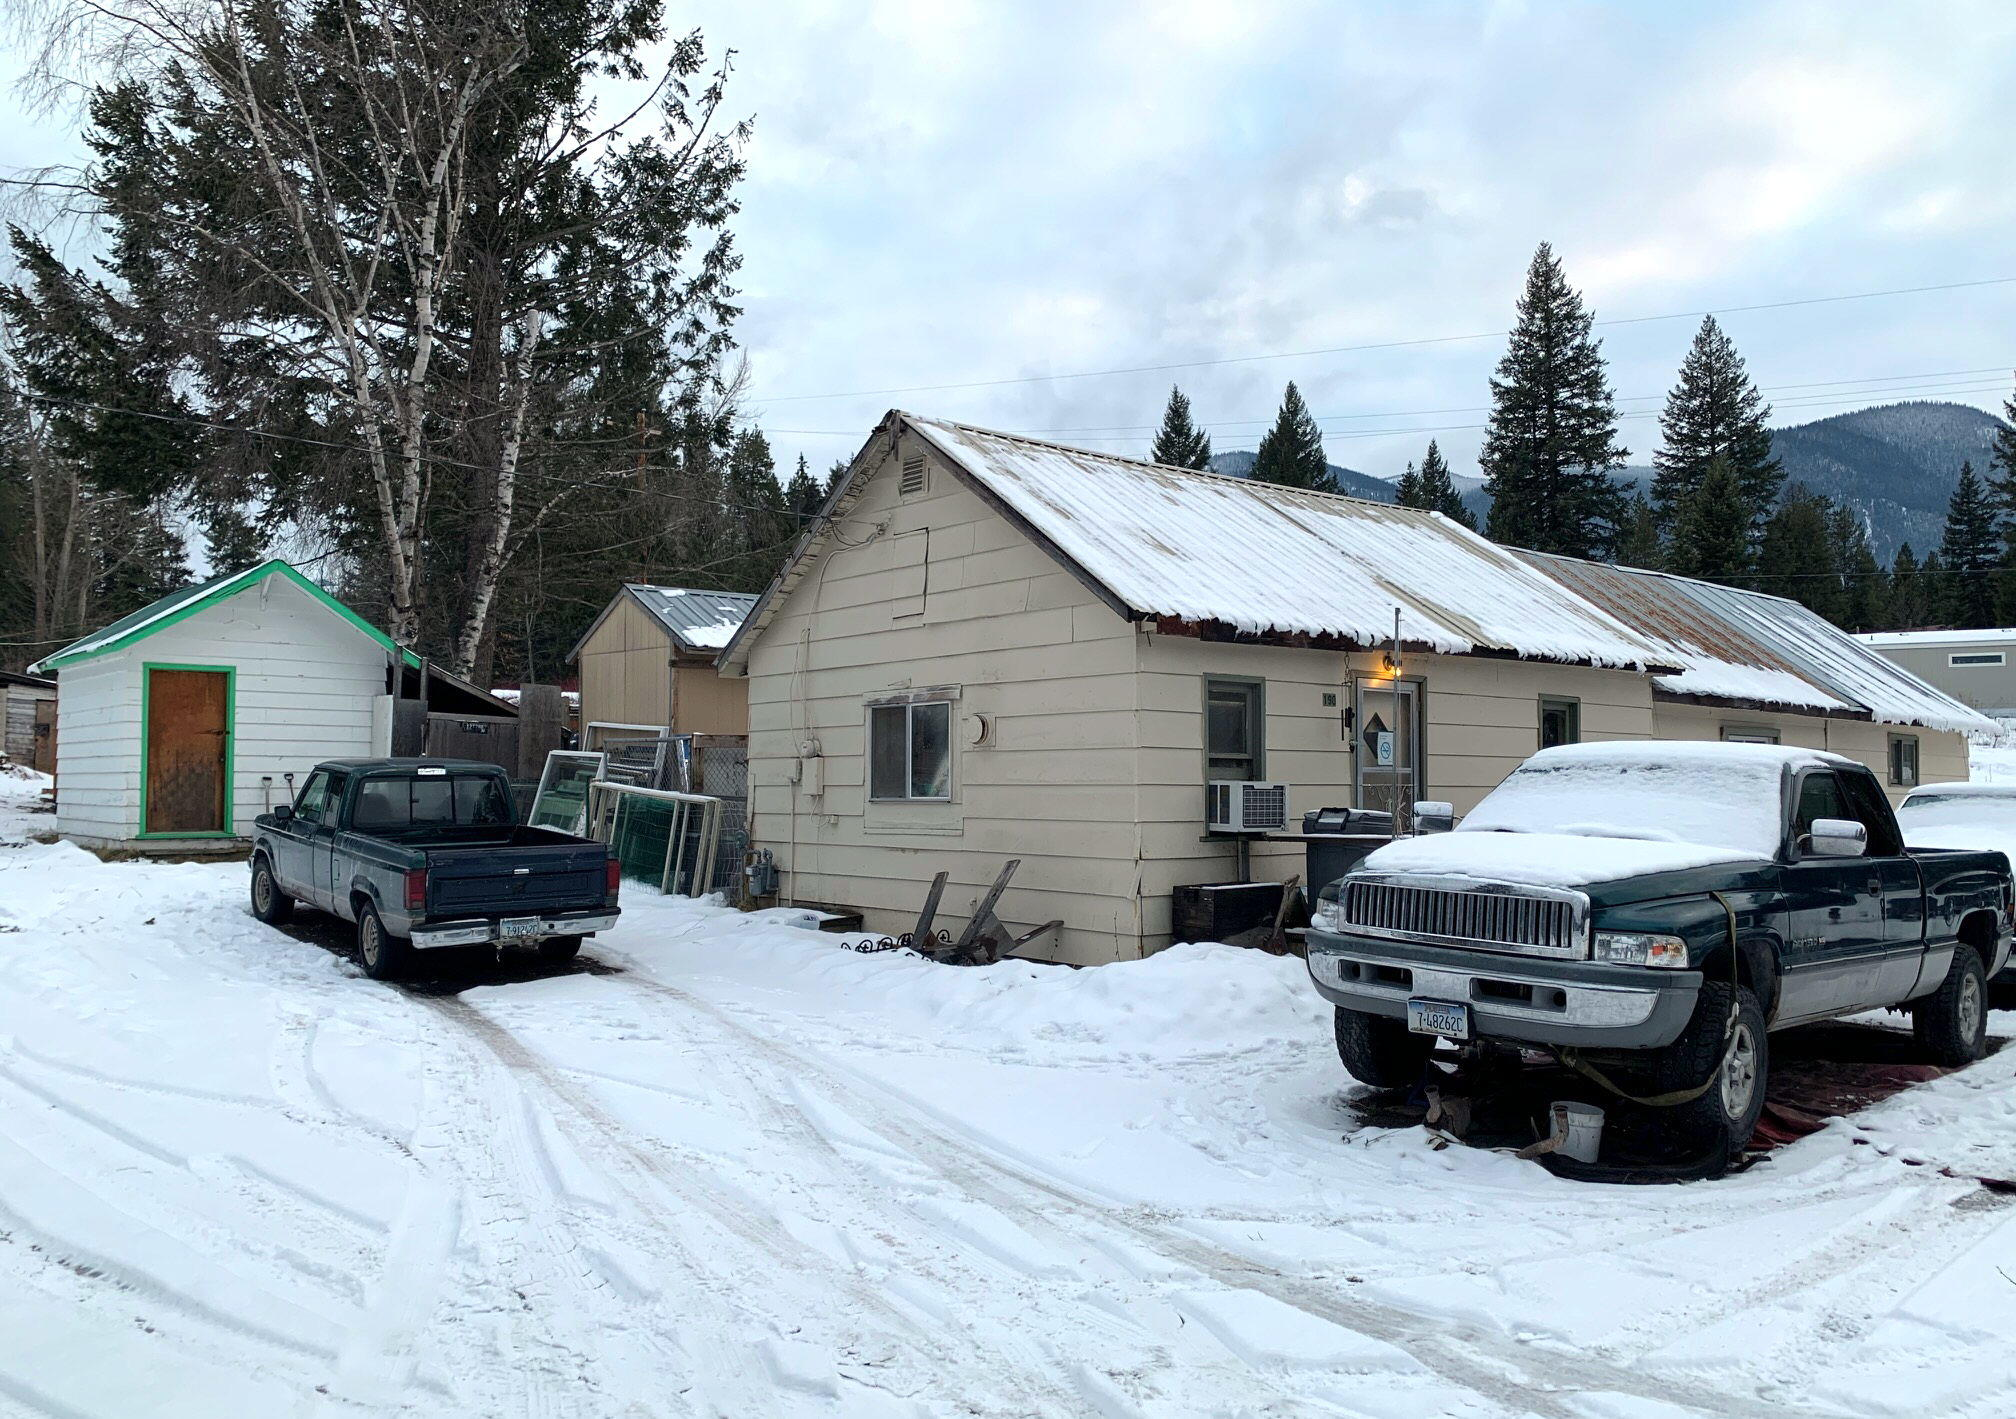 An eight minute drive from the west entrance to Glacier Park.  Just one minute the other direction is the south fork road, leading to vast miles the Great Bear and Bob Marshall Wilderness areas.  Convenient to the amenities of town and less than 15 minutes to Columbia Falls.  You will be hard pressed to find a more affordable option than this fixer upper in our market now.  Even with a complete remodel, it will still be relatively affordable in this market.  Sold As-Is.  Seller will need minimum 30 days rent-back after closing.  Seller indicates this loan appears to be assumable.  Very likely will not finance for most loans as it sits now.  Call Justin Burt 406-885-7453 or your real estate professional!